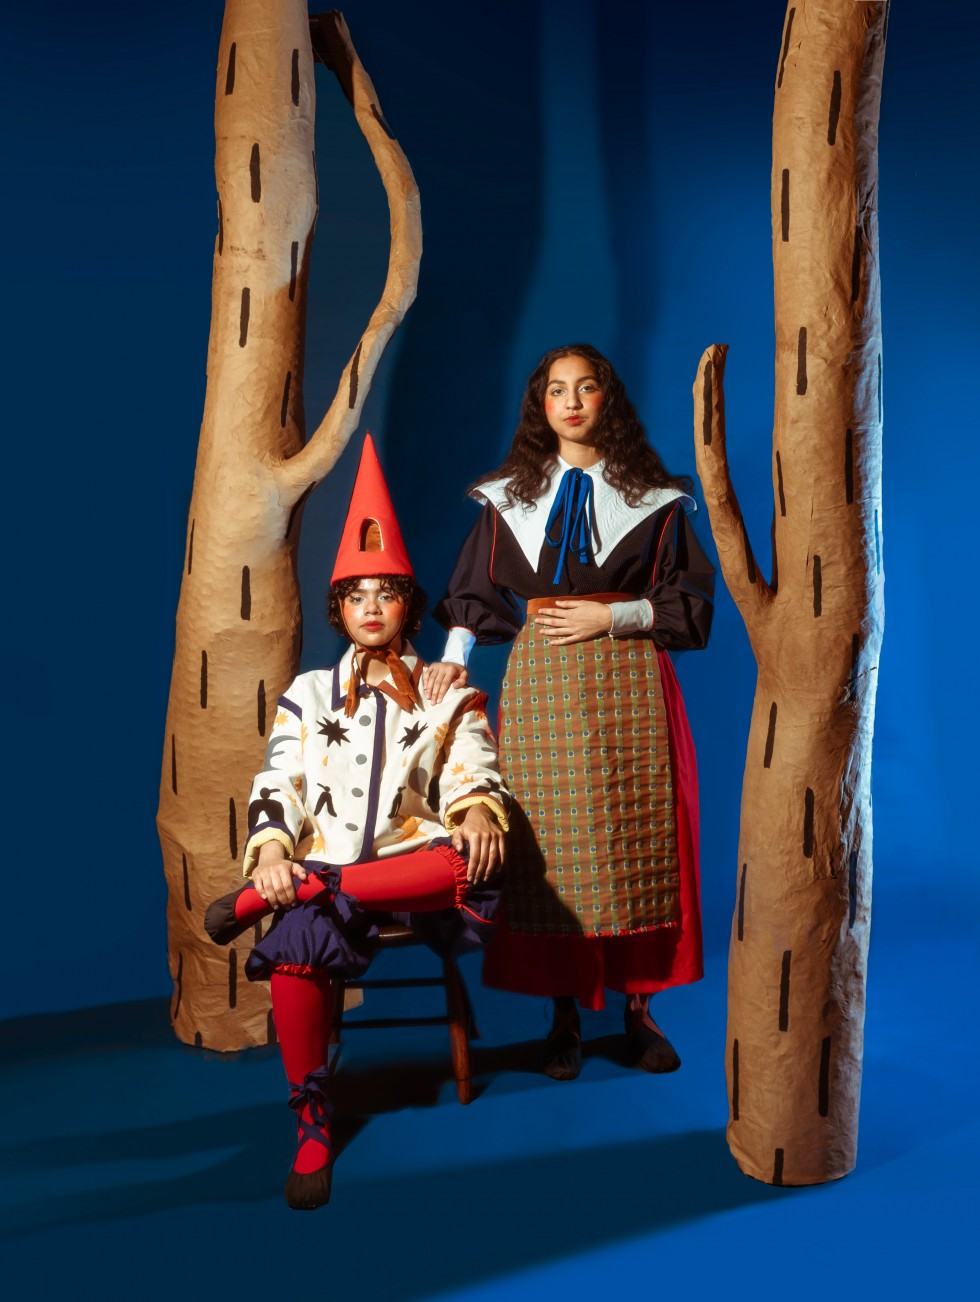 The third image has the same two models in the same outfits. Now they are both facing the camera with the first model sitting in a chair slightly to the left of the middle of the frame. They sit with their left foot resting on their right knee. Their left